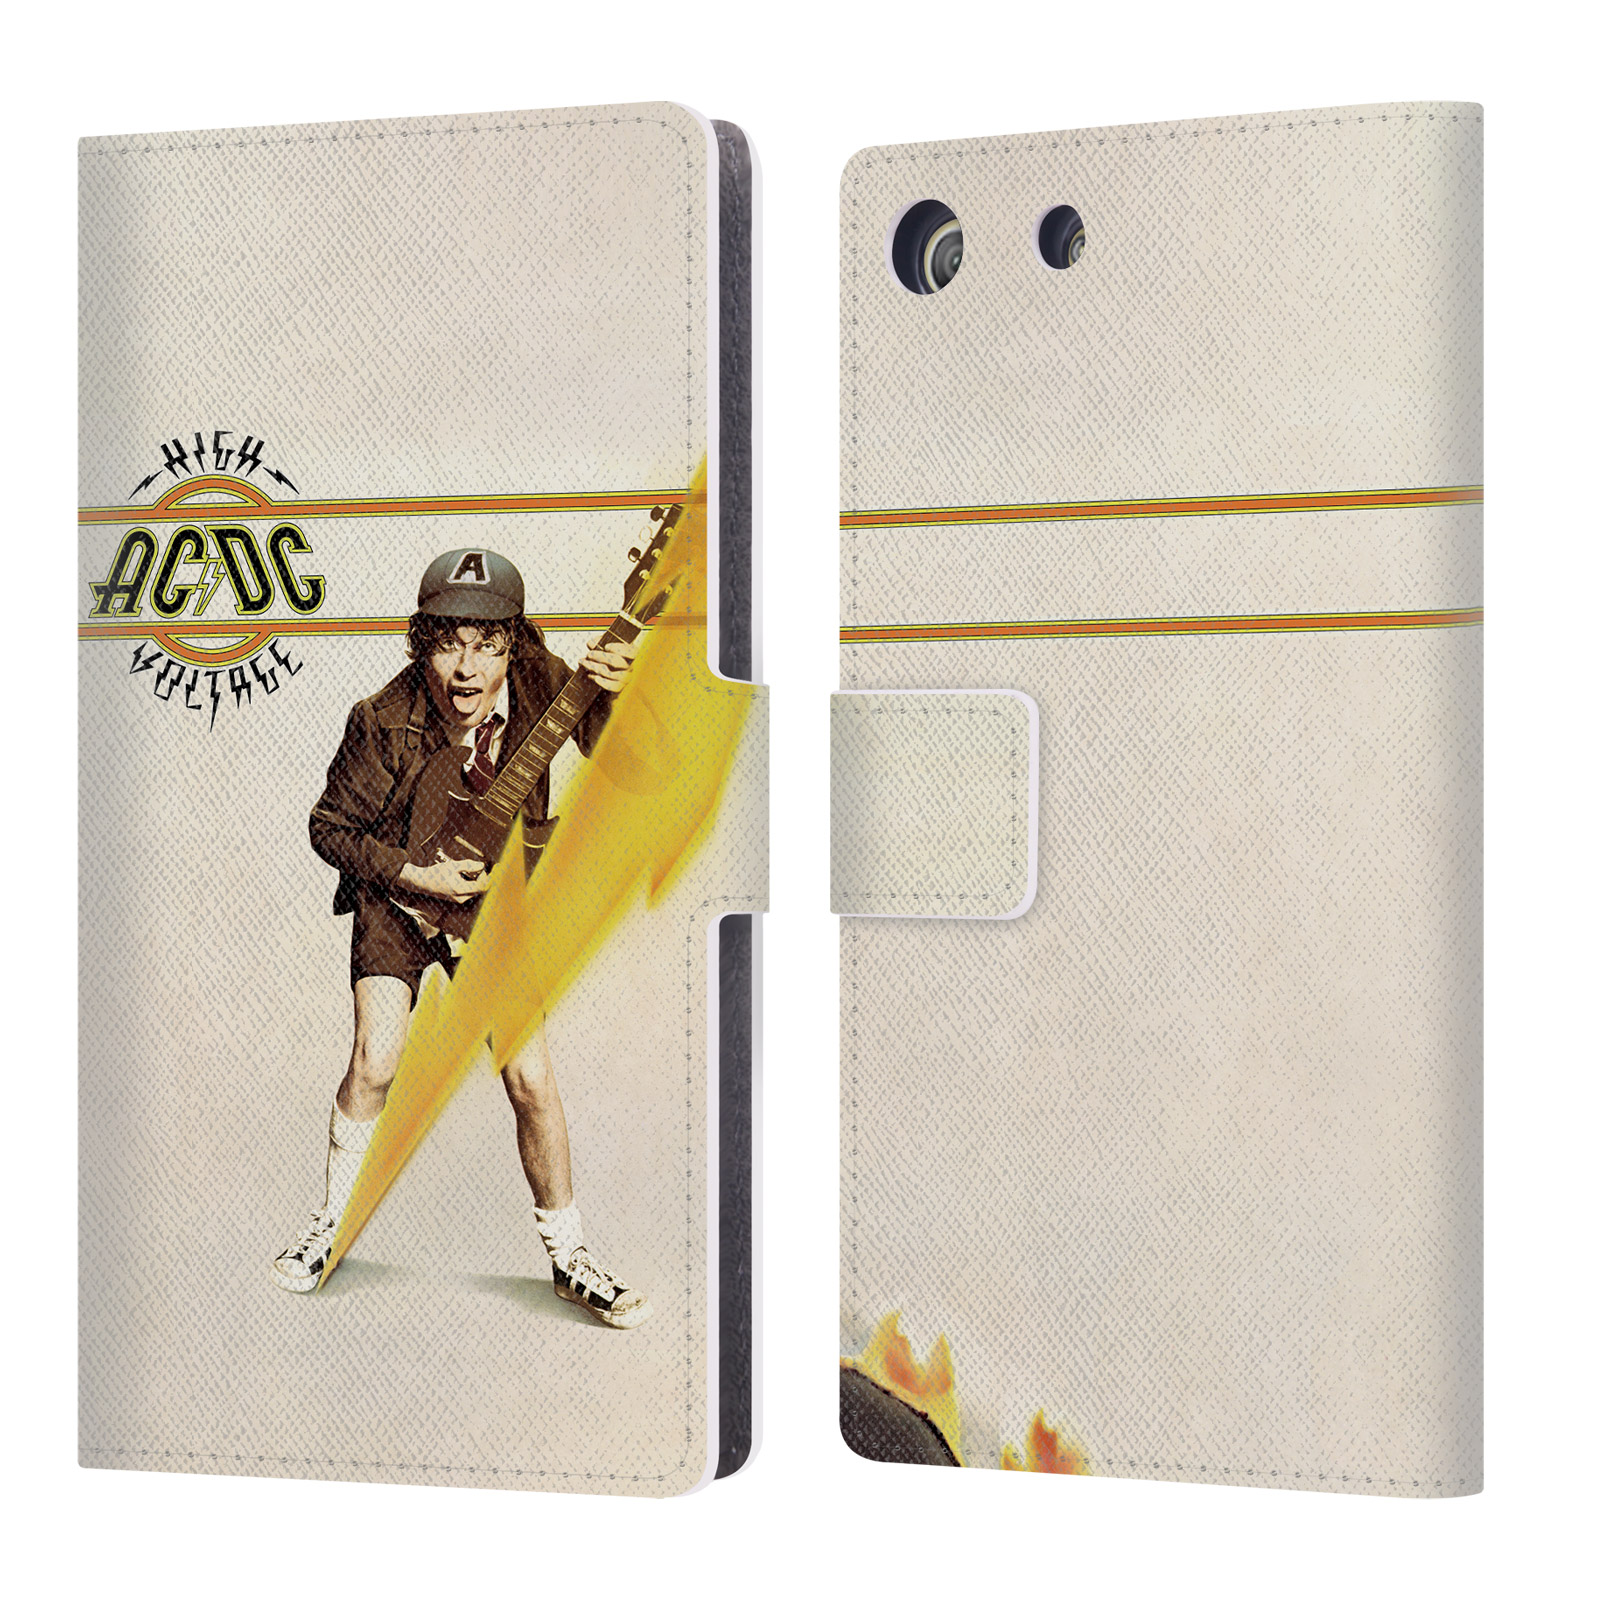 OFFICIAL AC/DC ACDC ALBUM COVER LEATHER BOOK WALLET CASE COVER FOR SONY PHONES 2